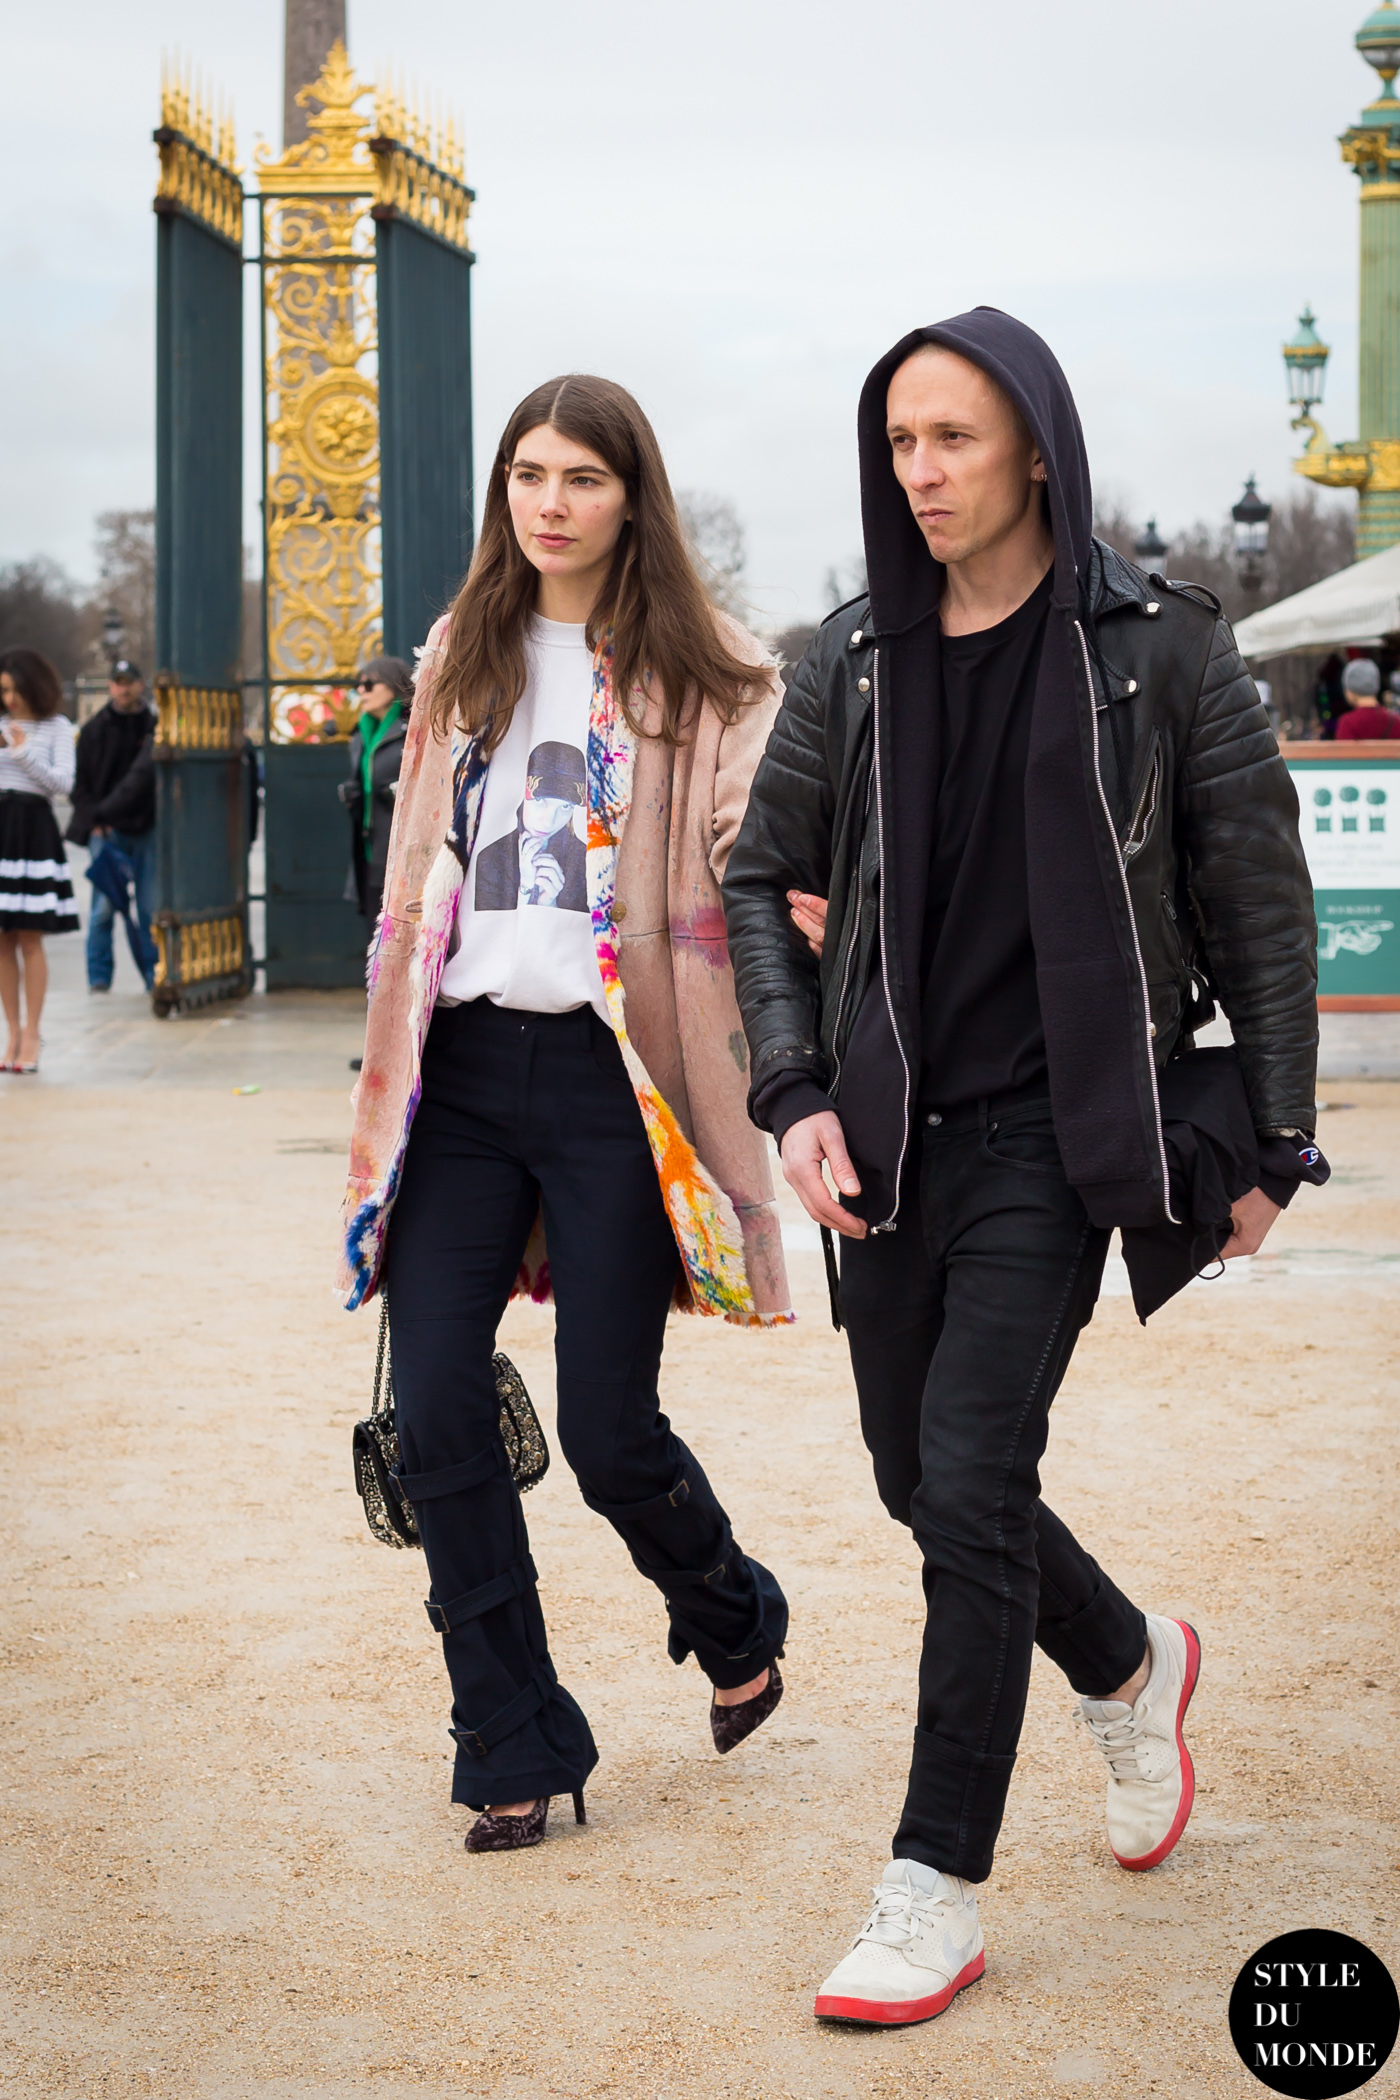 Ursina Gysi and Dominic Haydn Rawle Street Style Street Fashion Streetsnaps by STYLEDUMONDE Street Style Fashion Blog